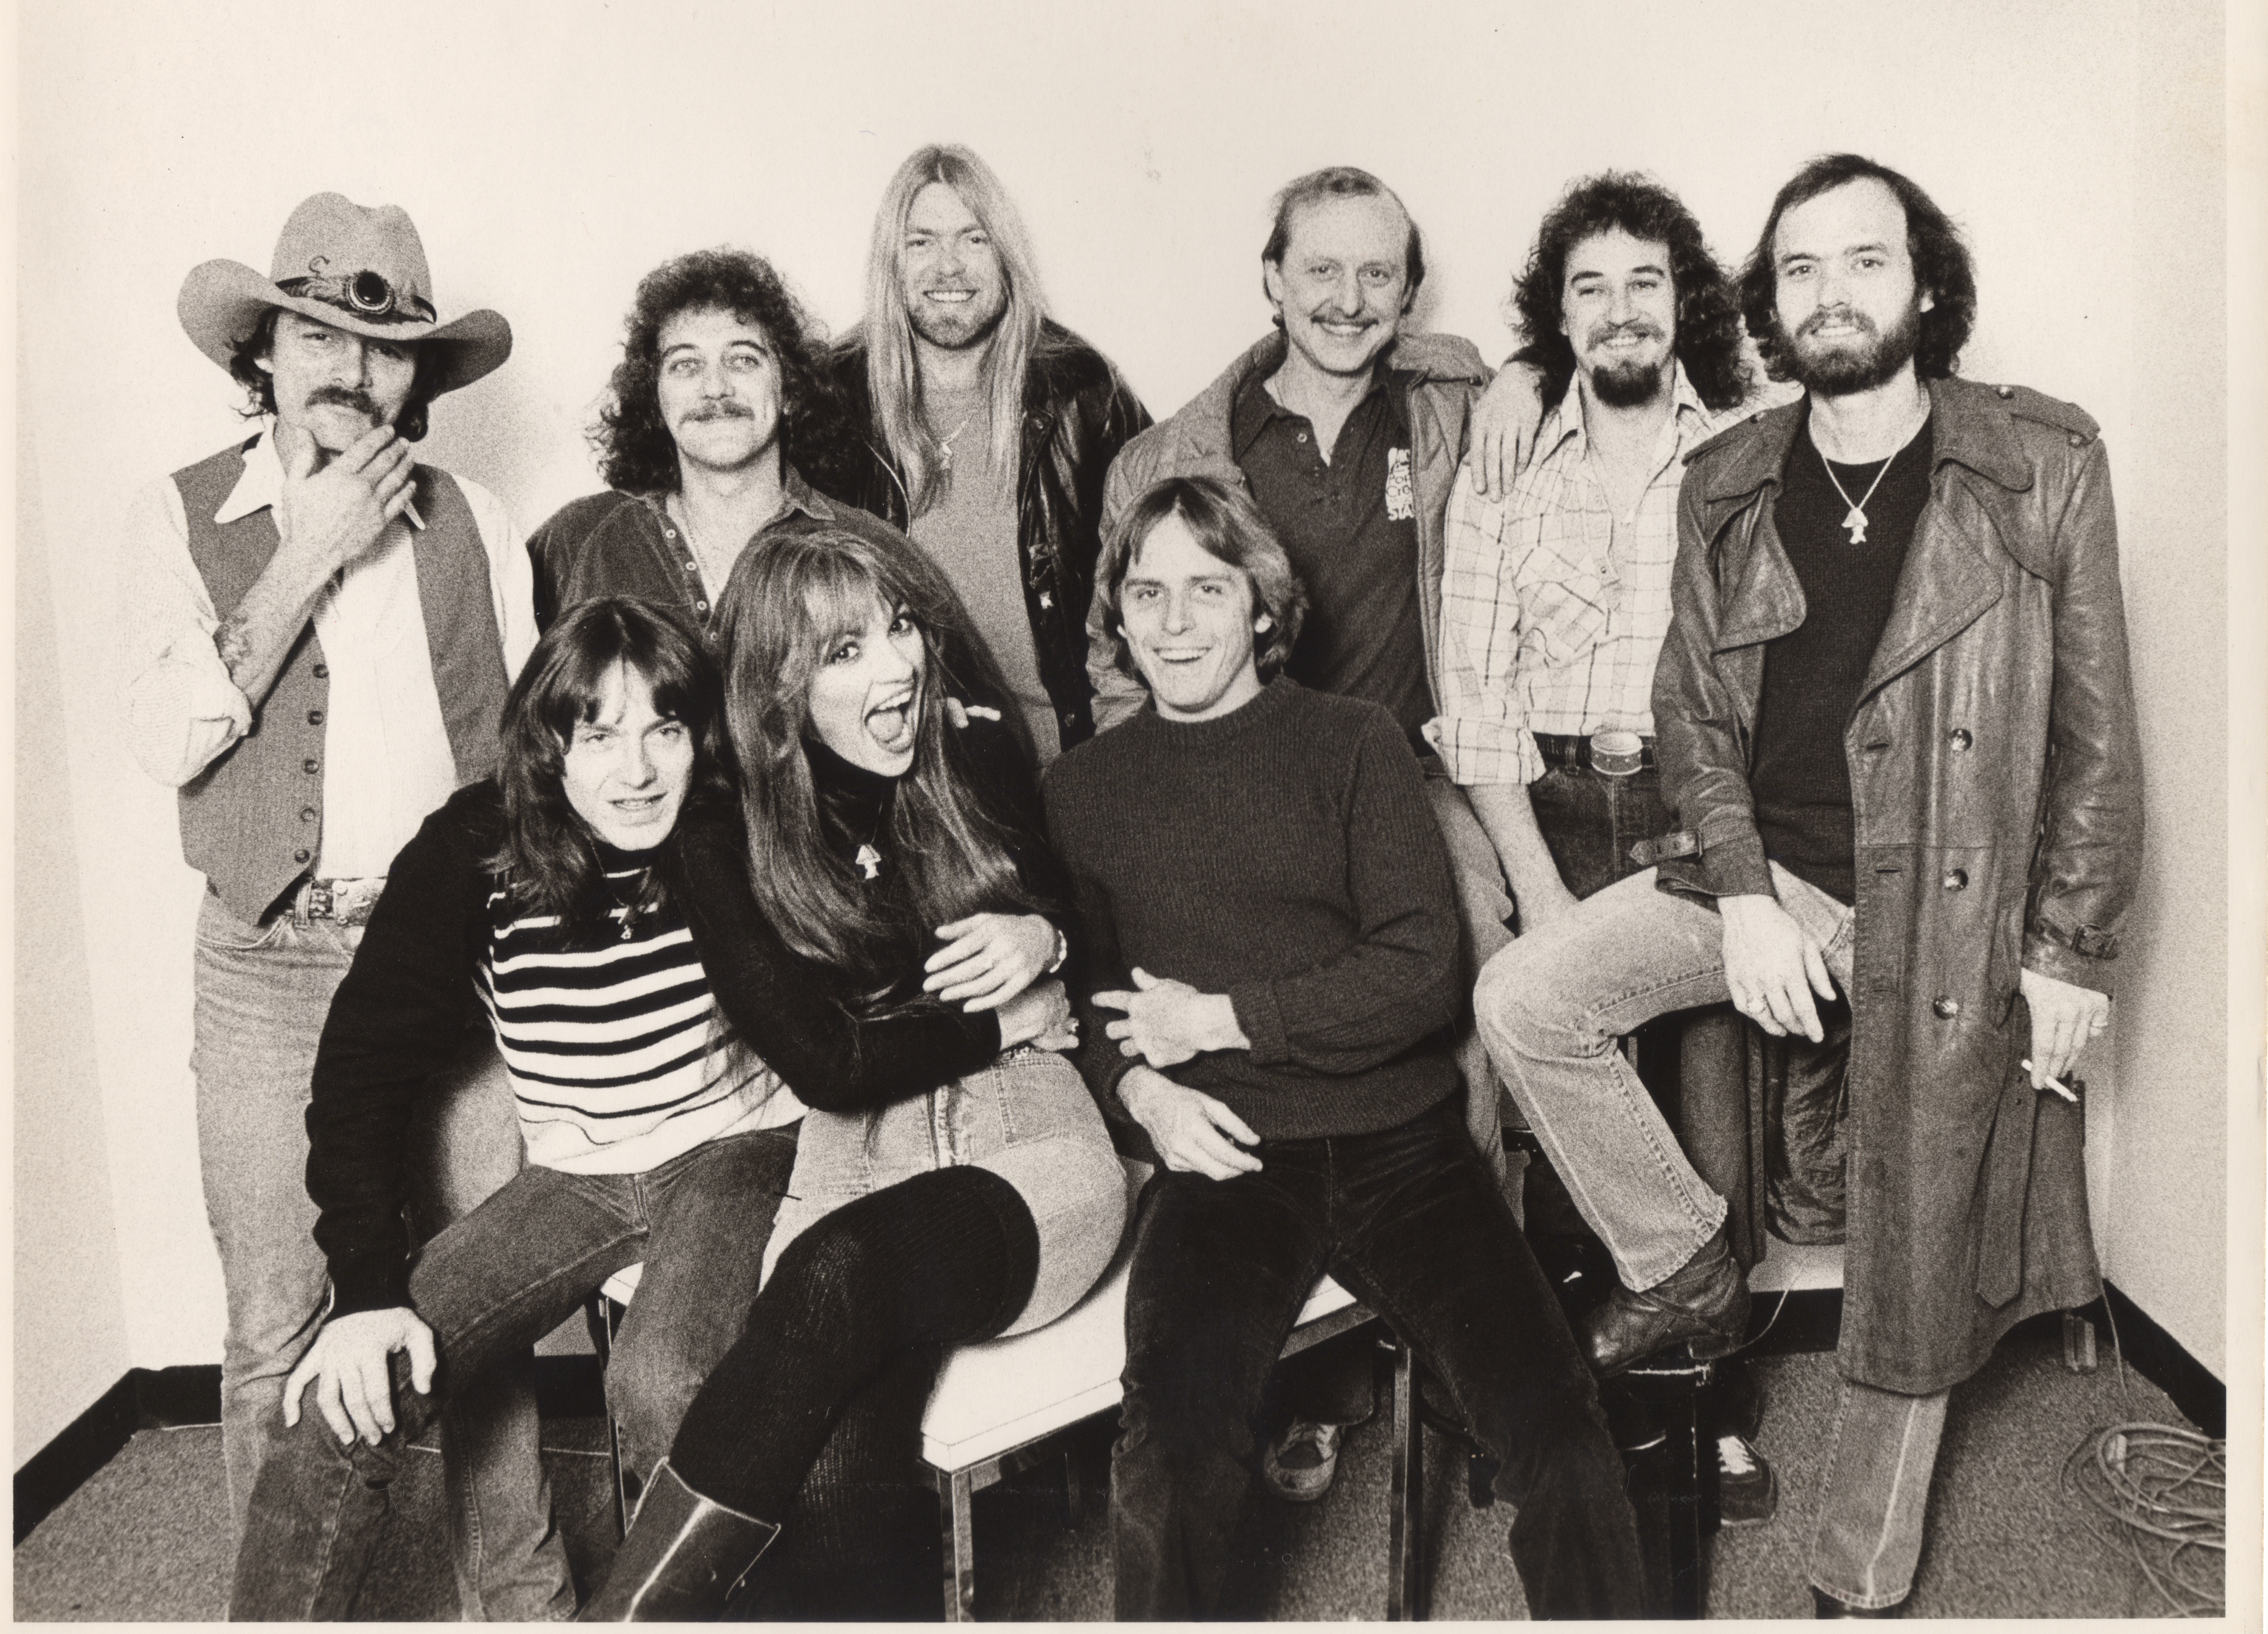 Touring with the Allman Brothers